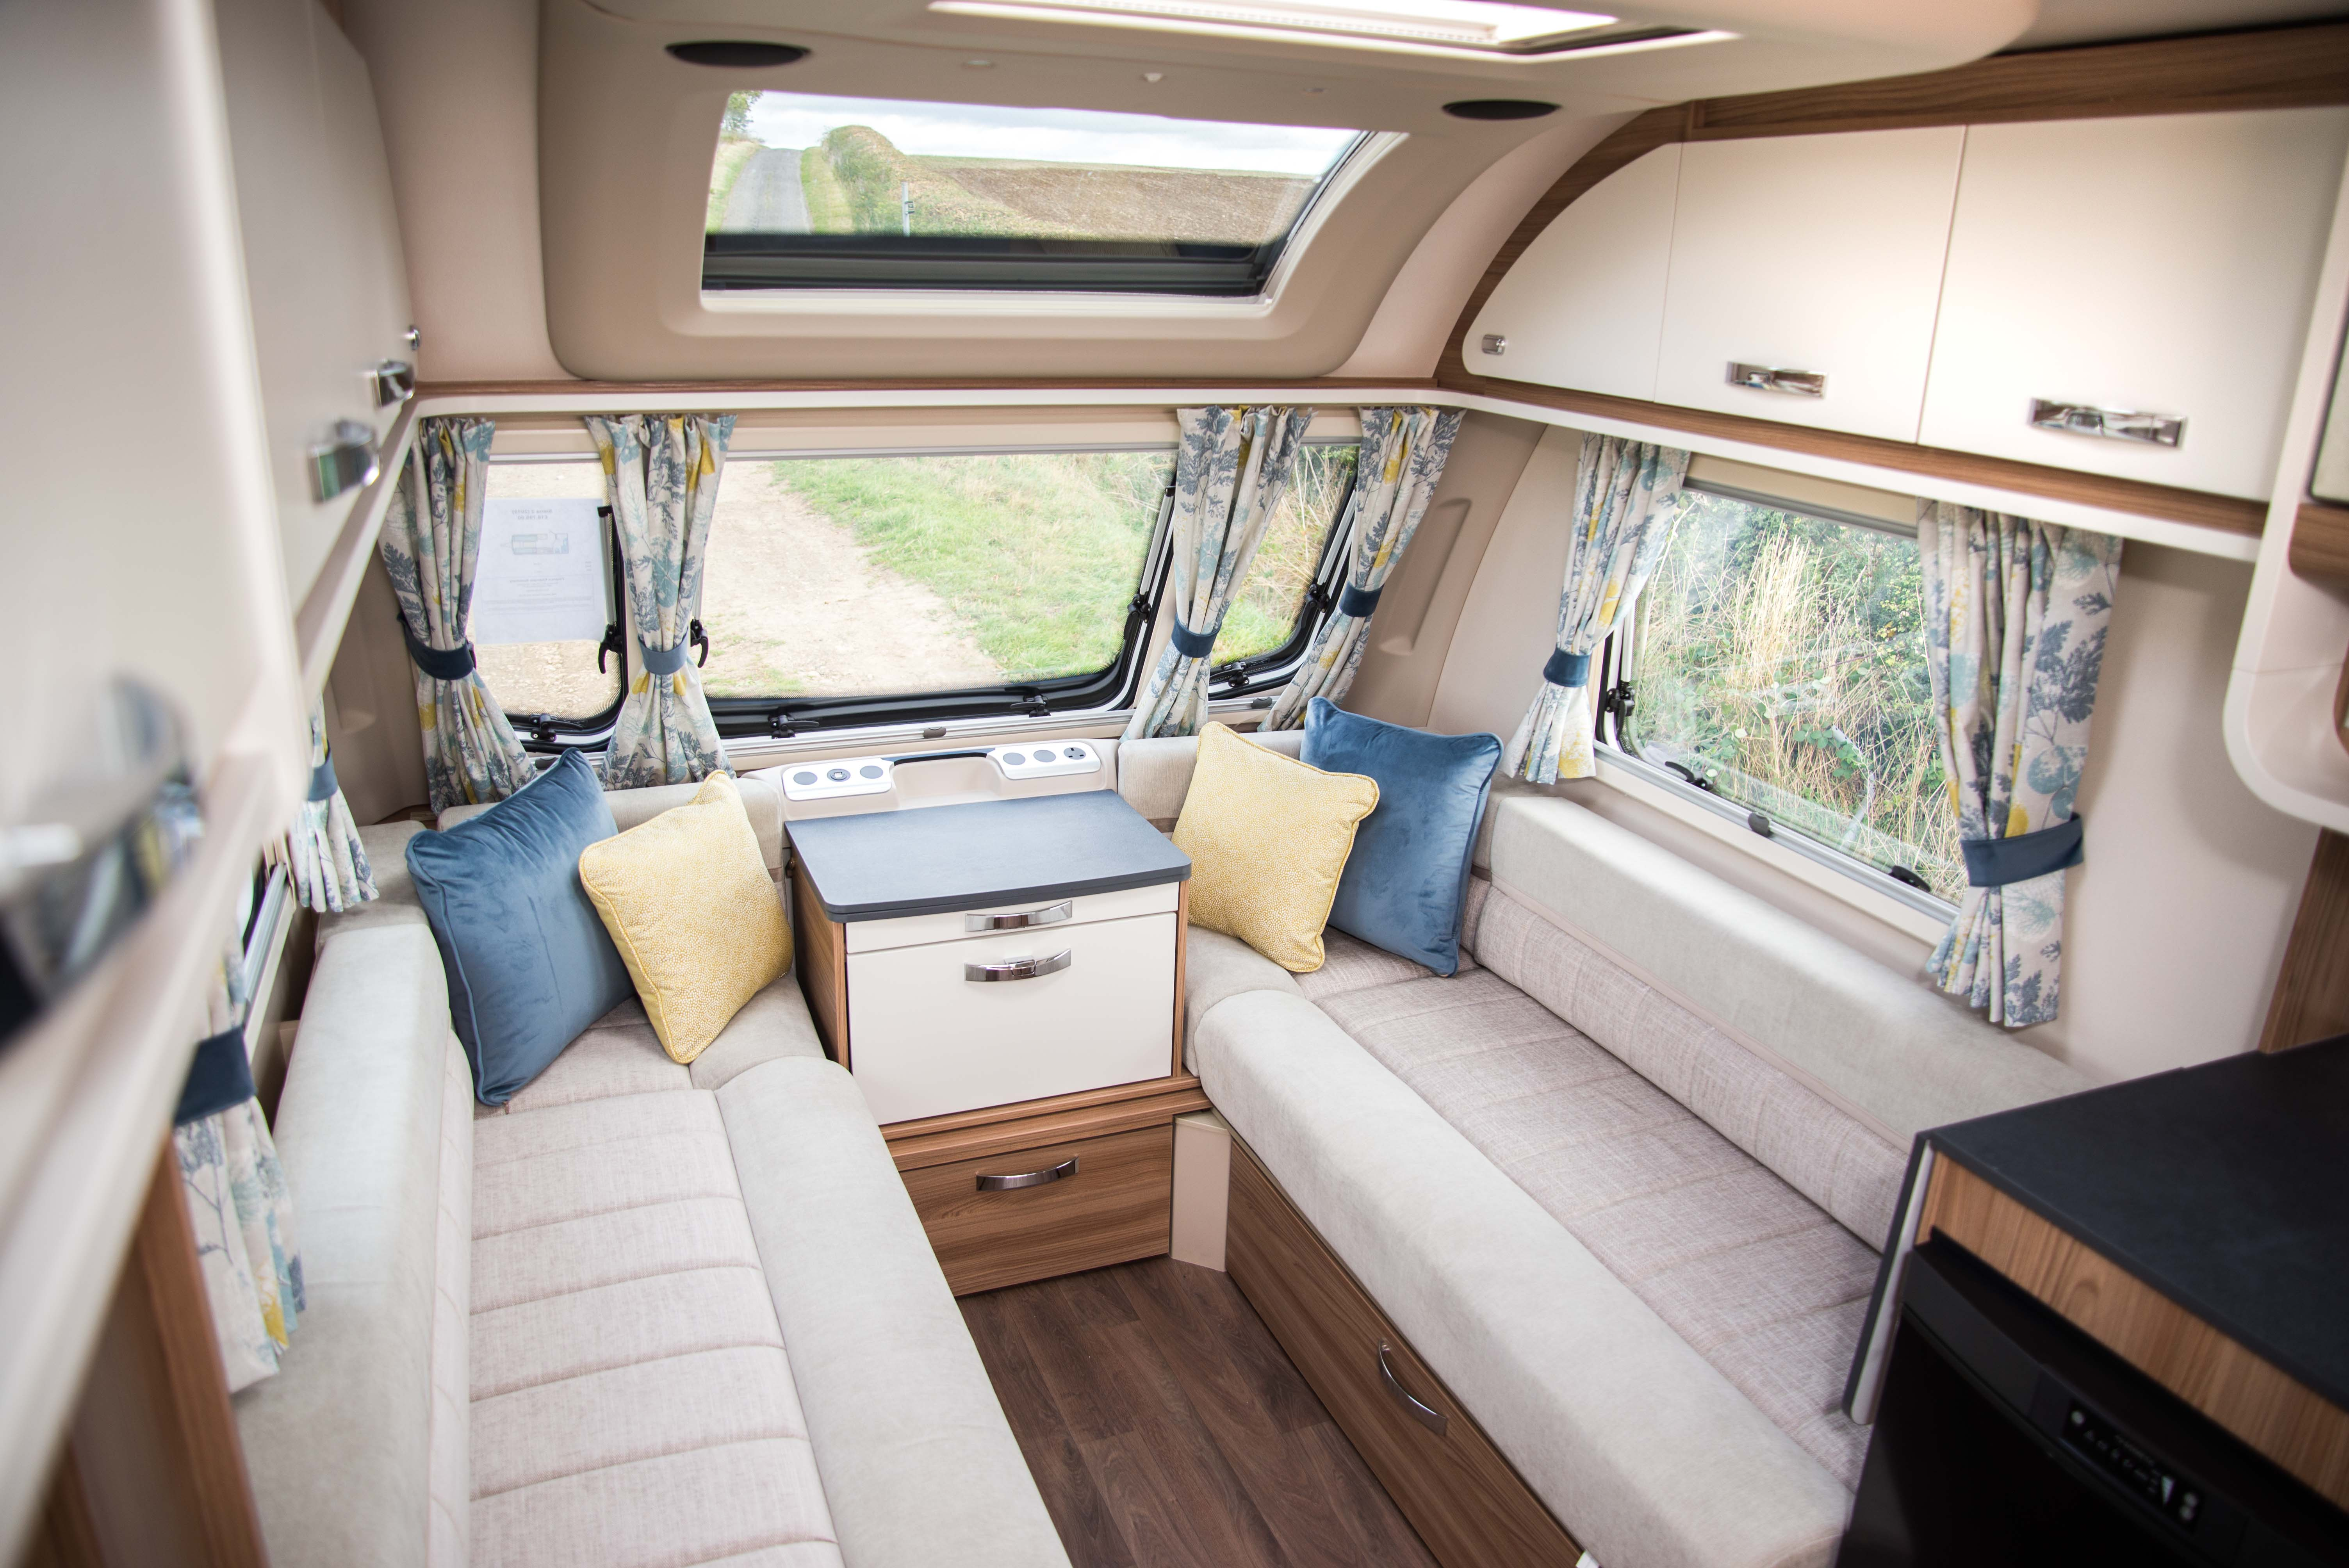 Swift Caravans Siena Front Seating Image